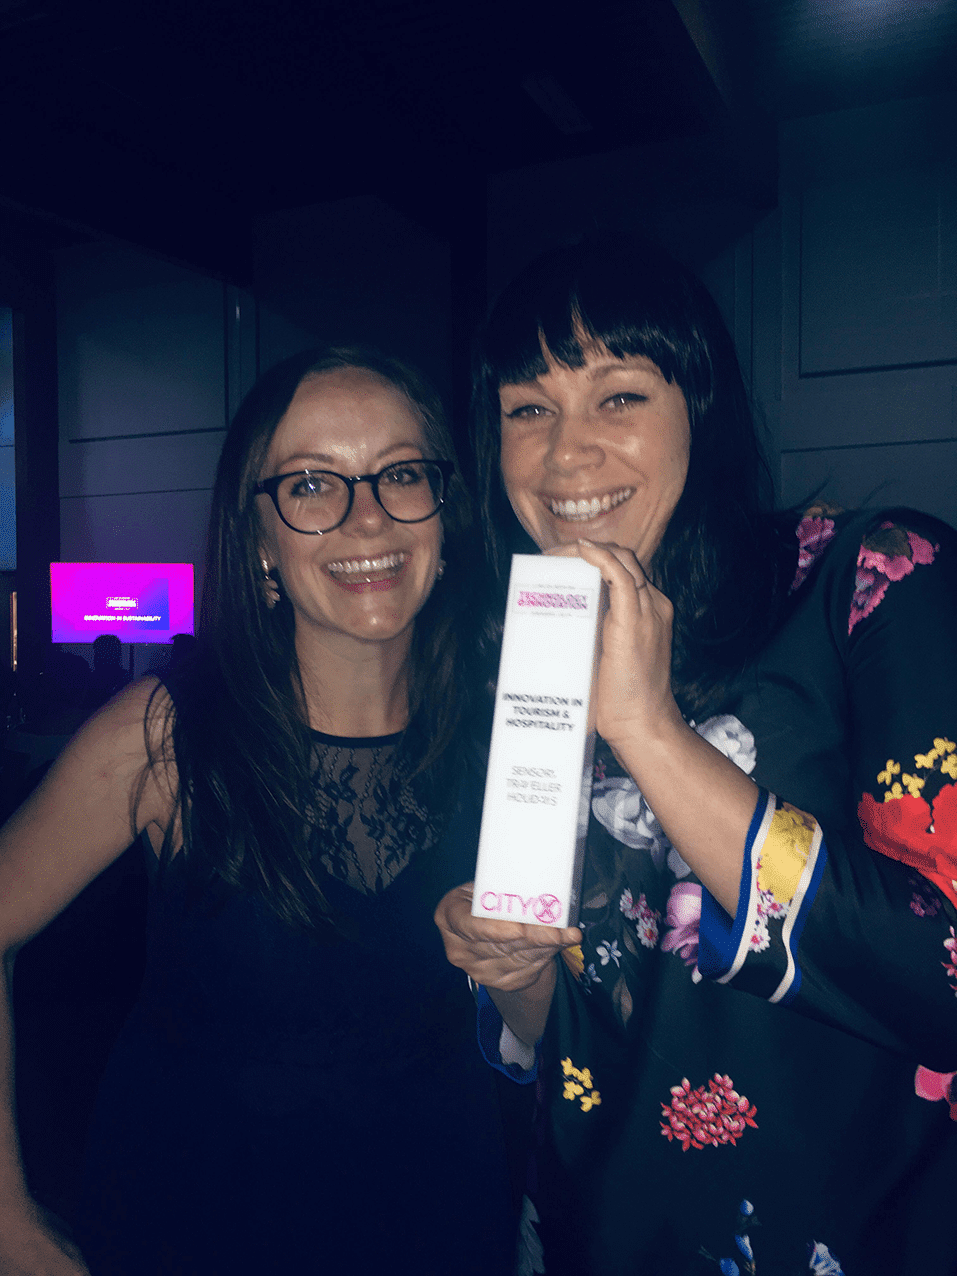 Gemma & Atma at the Awards Sensory Traveller Holidays